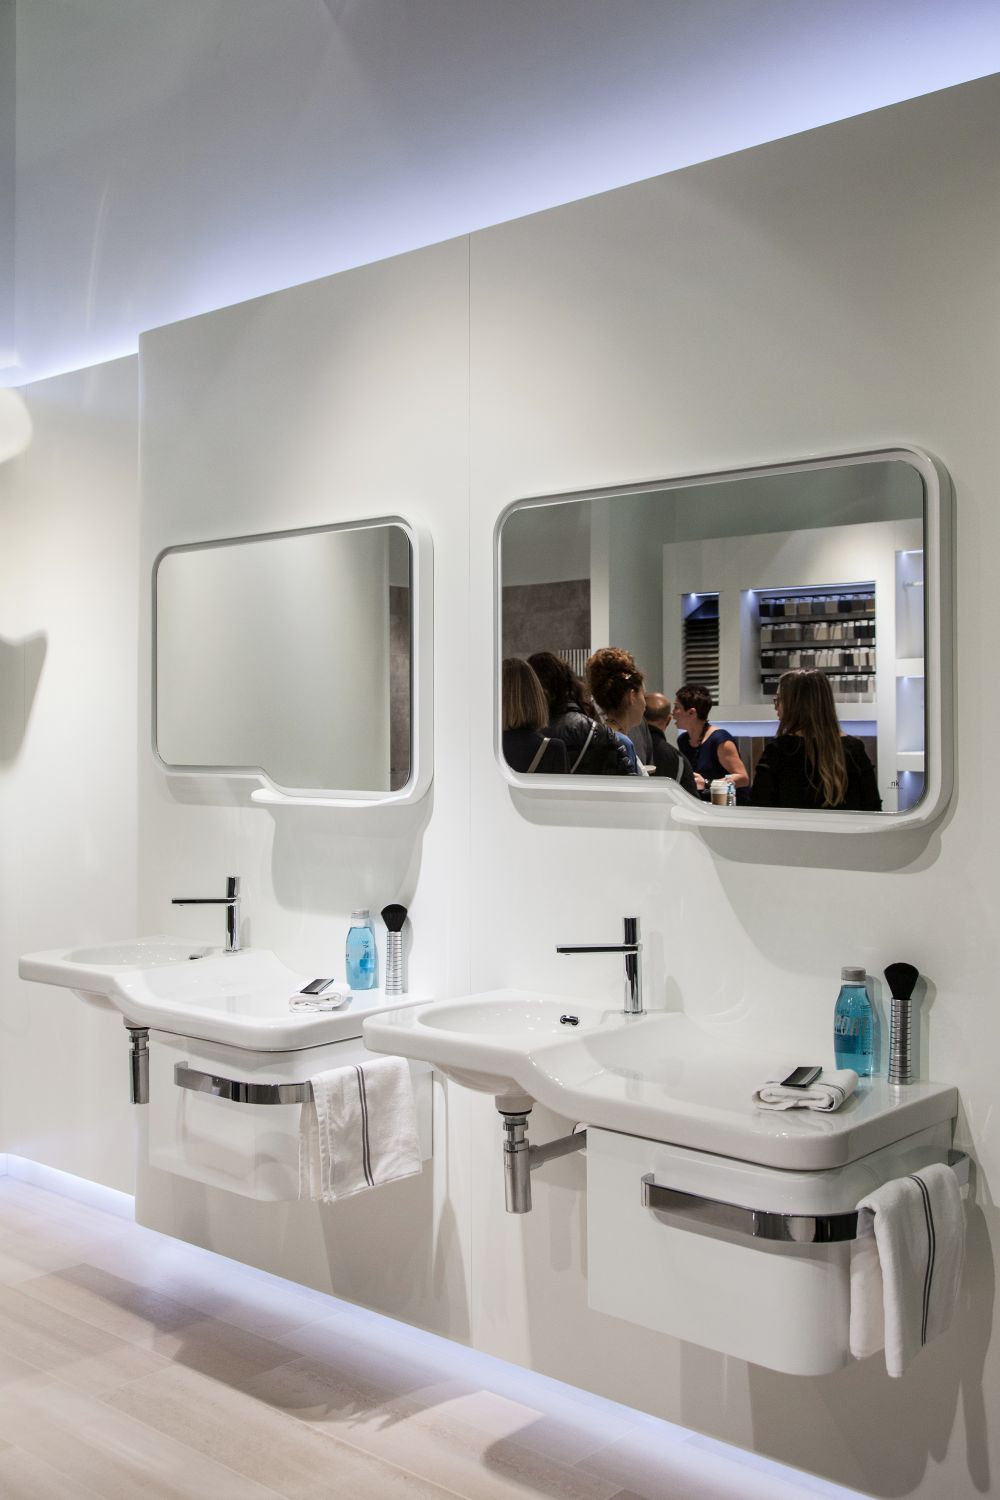 Two smaller vanities are an option instead of a large one with two basins.